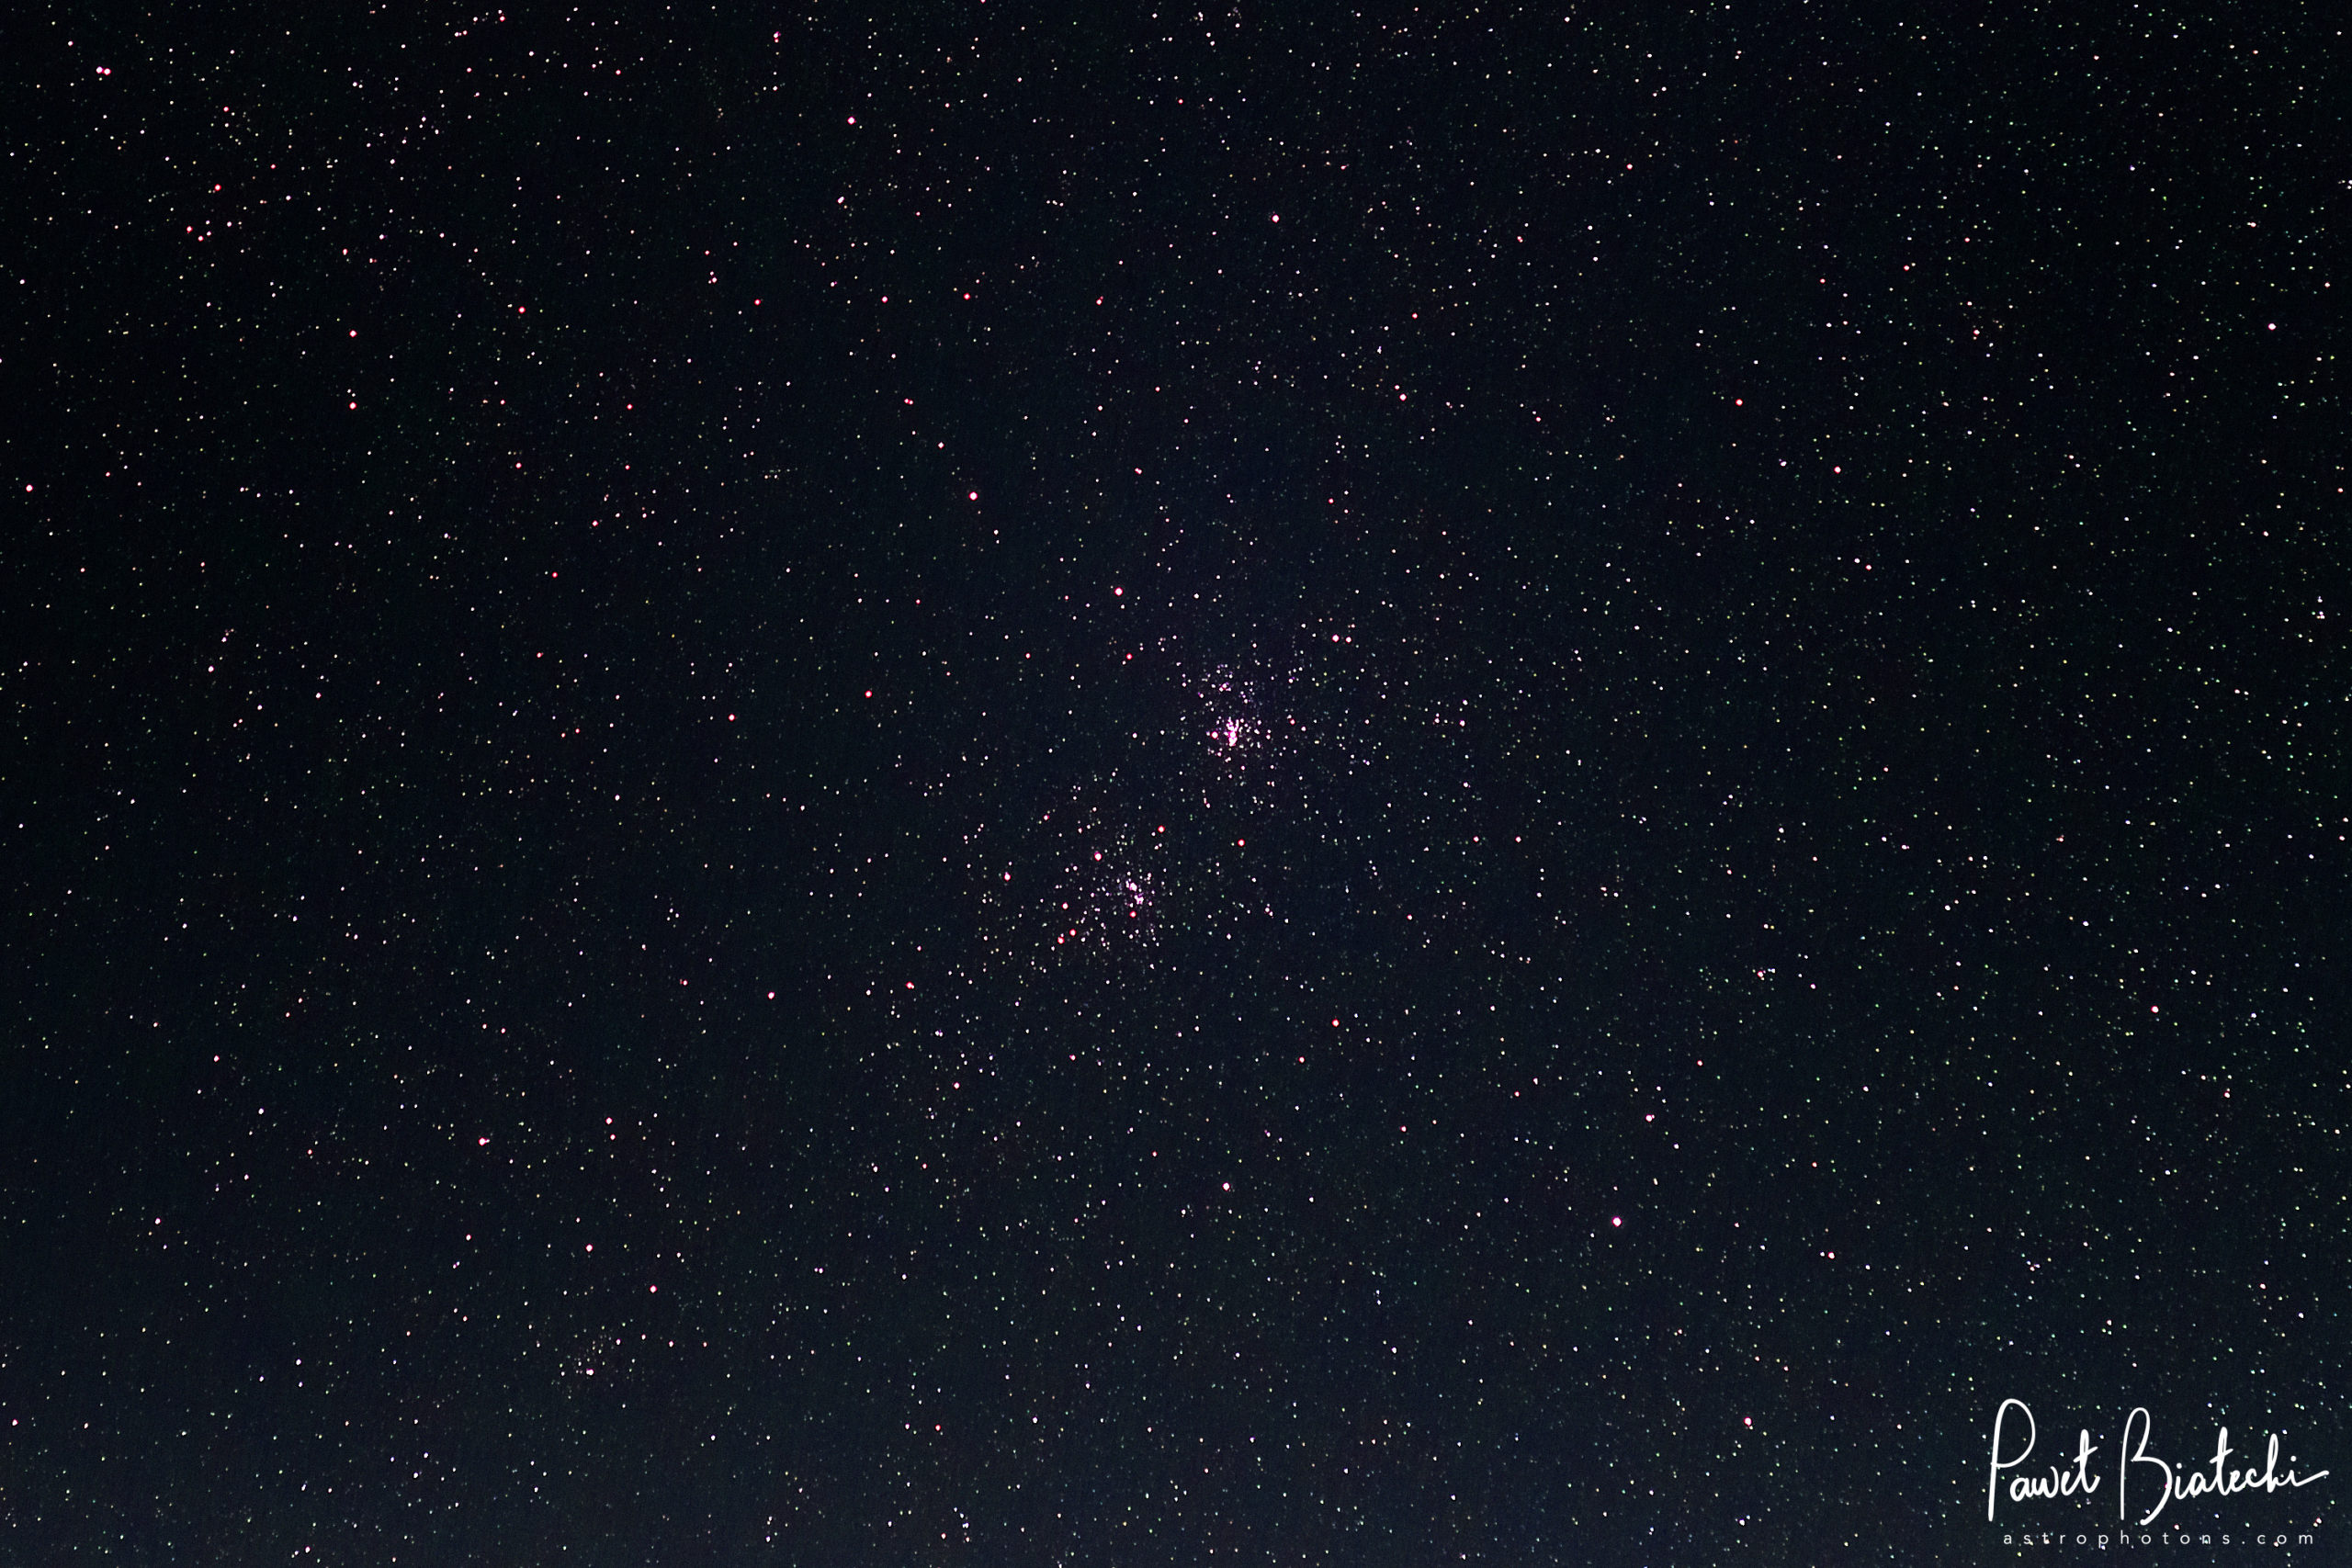 Double Cluster (NGC 869 and NGC 884, Caldwell 14)